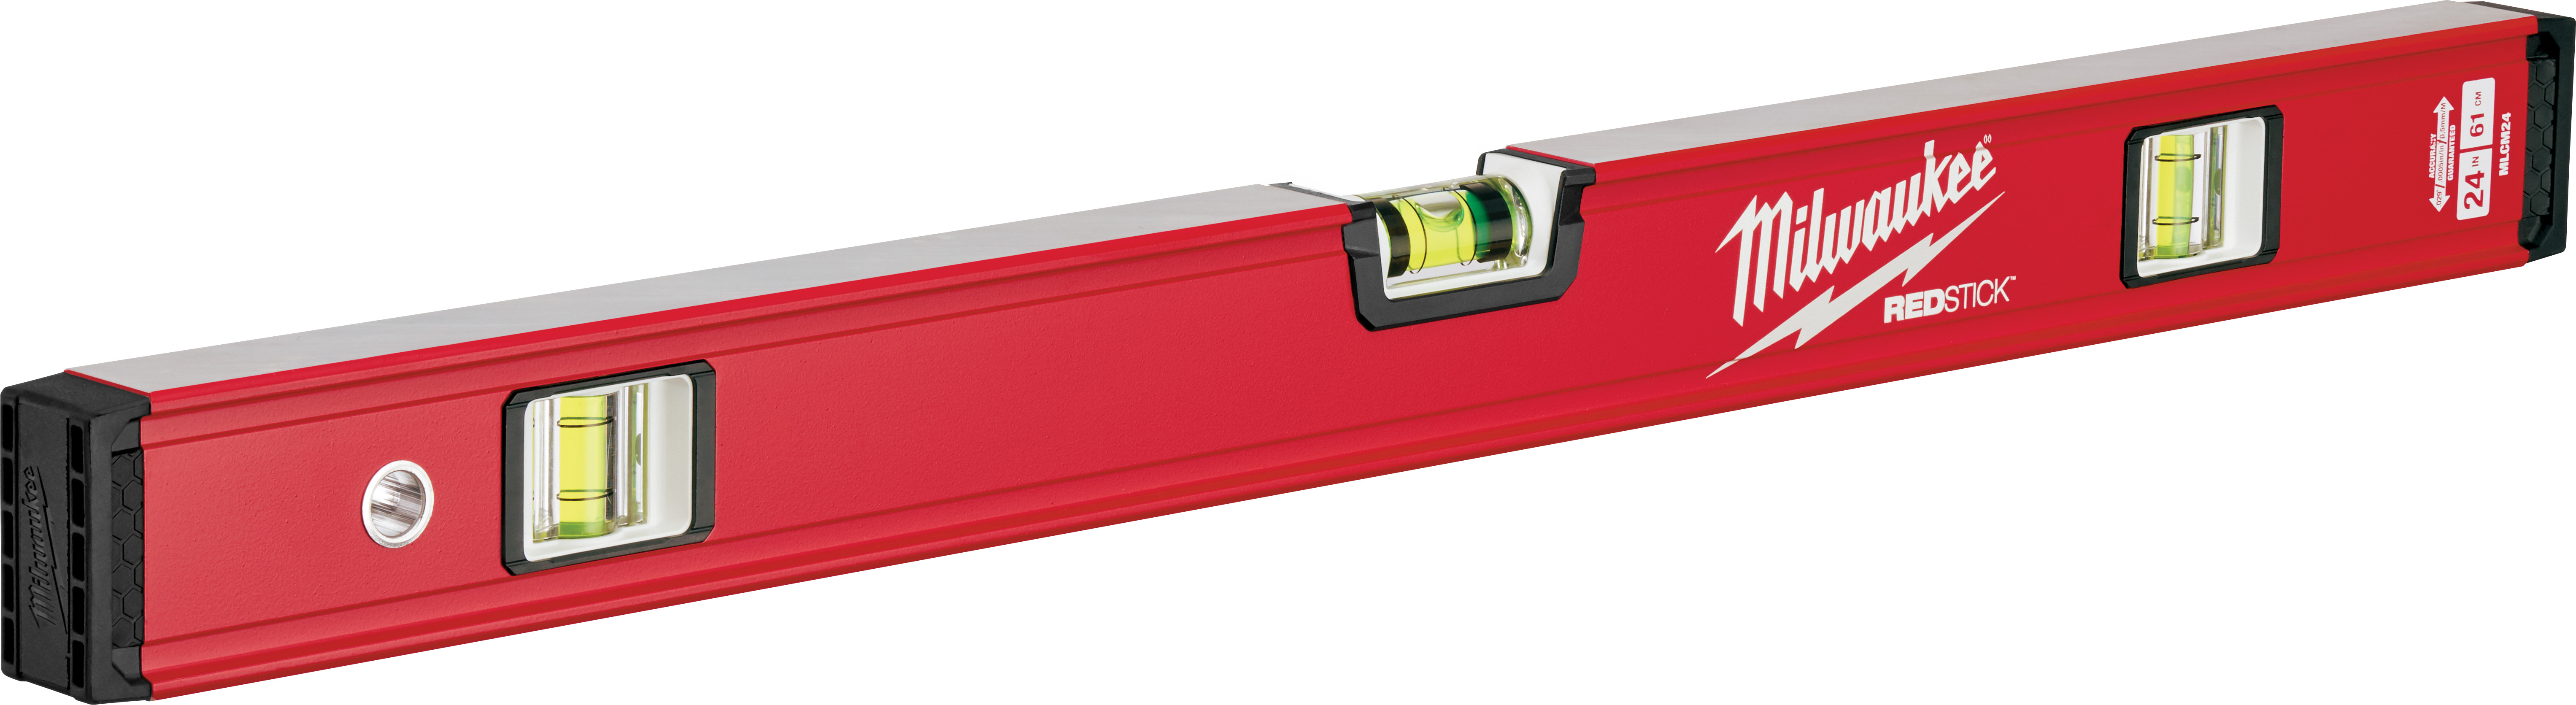 Milwaukee® REDSTICK™ MLCM24 Compact Box Level, 24 in L, 3 Vials, Aluminum, (1) Level, (2) Plumb Vial Position, 0.0005 in/in Accuracy